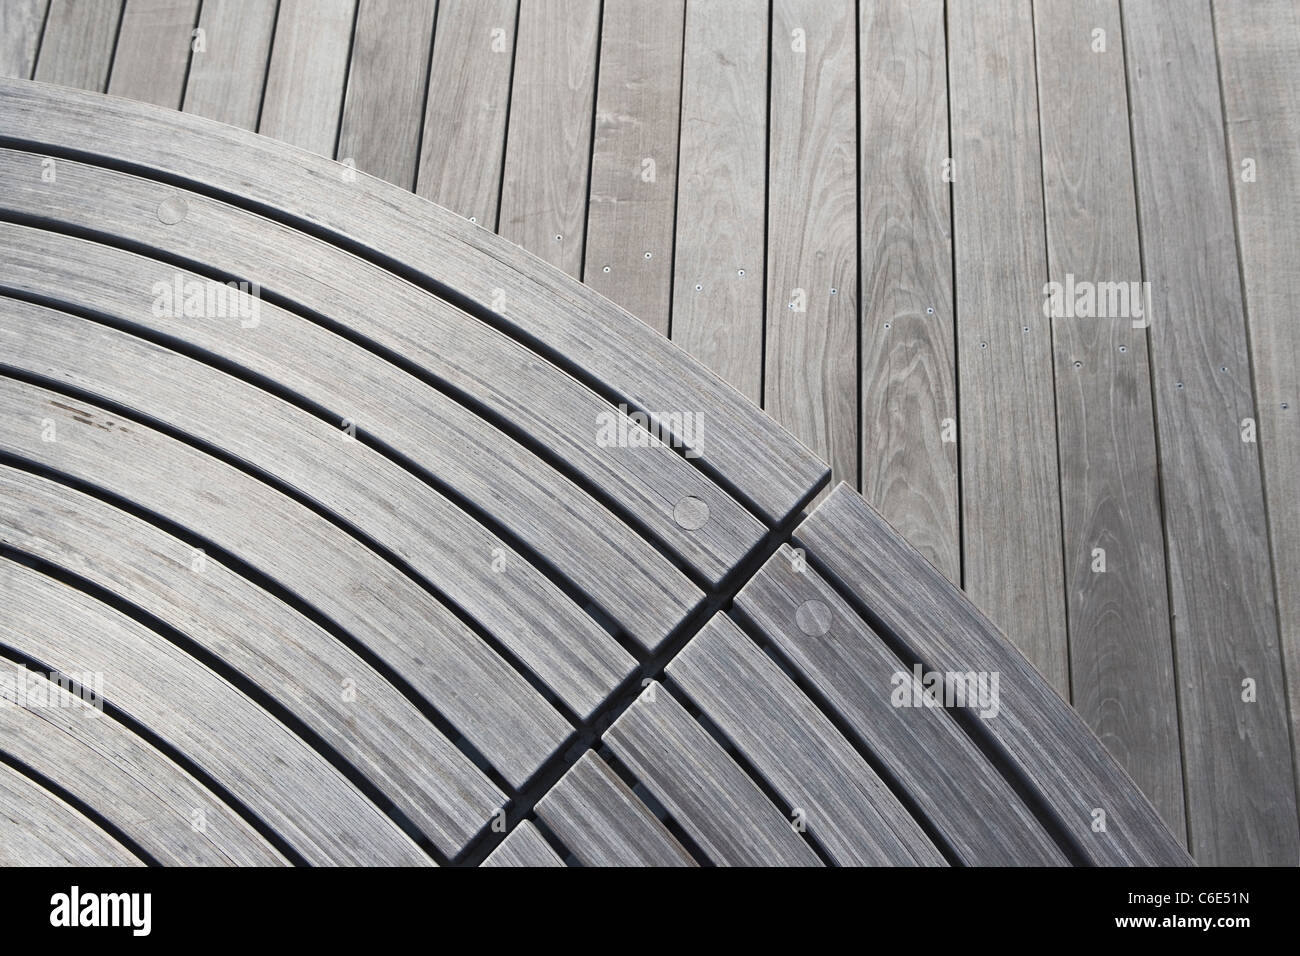 USA, New York State, New York City, wooden park bench - Stock Image